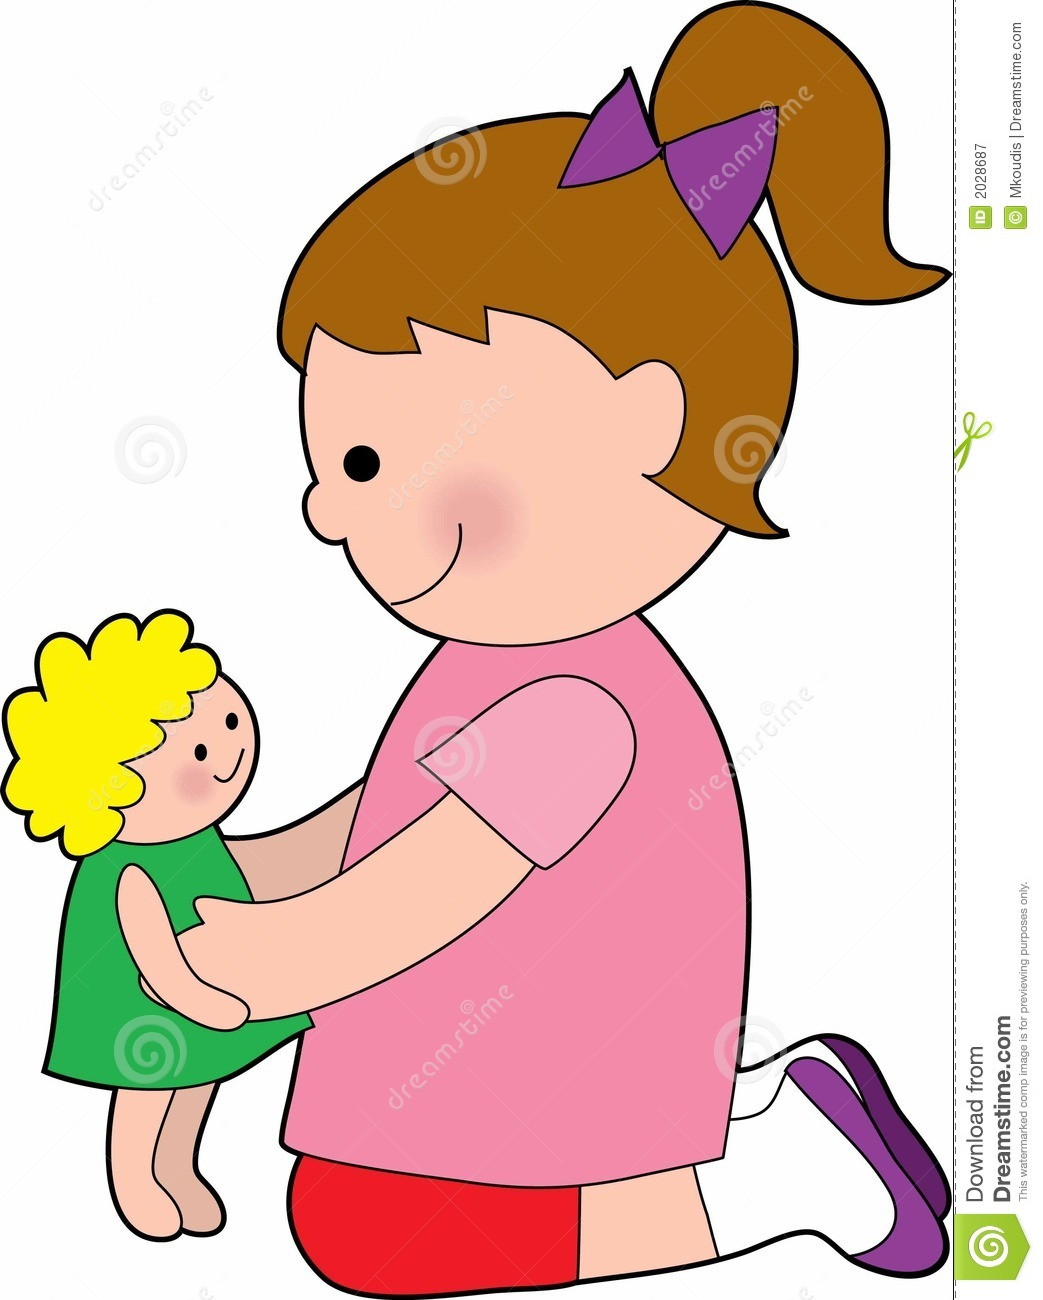 Little Girl With A Baby Doll Royalty Free Stock Photography - Image ...